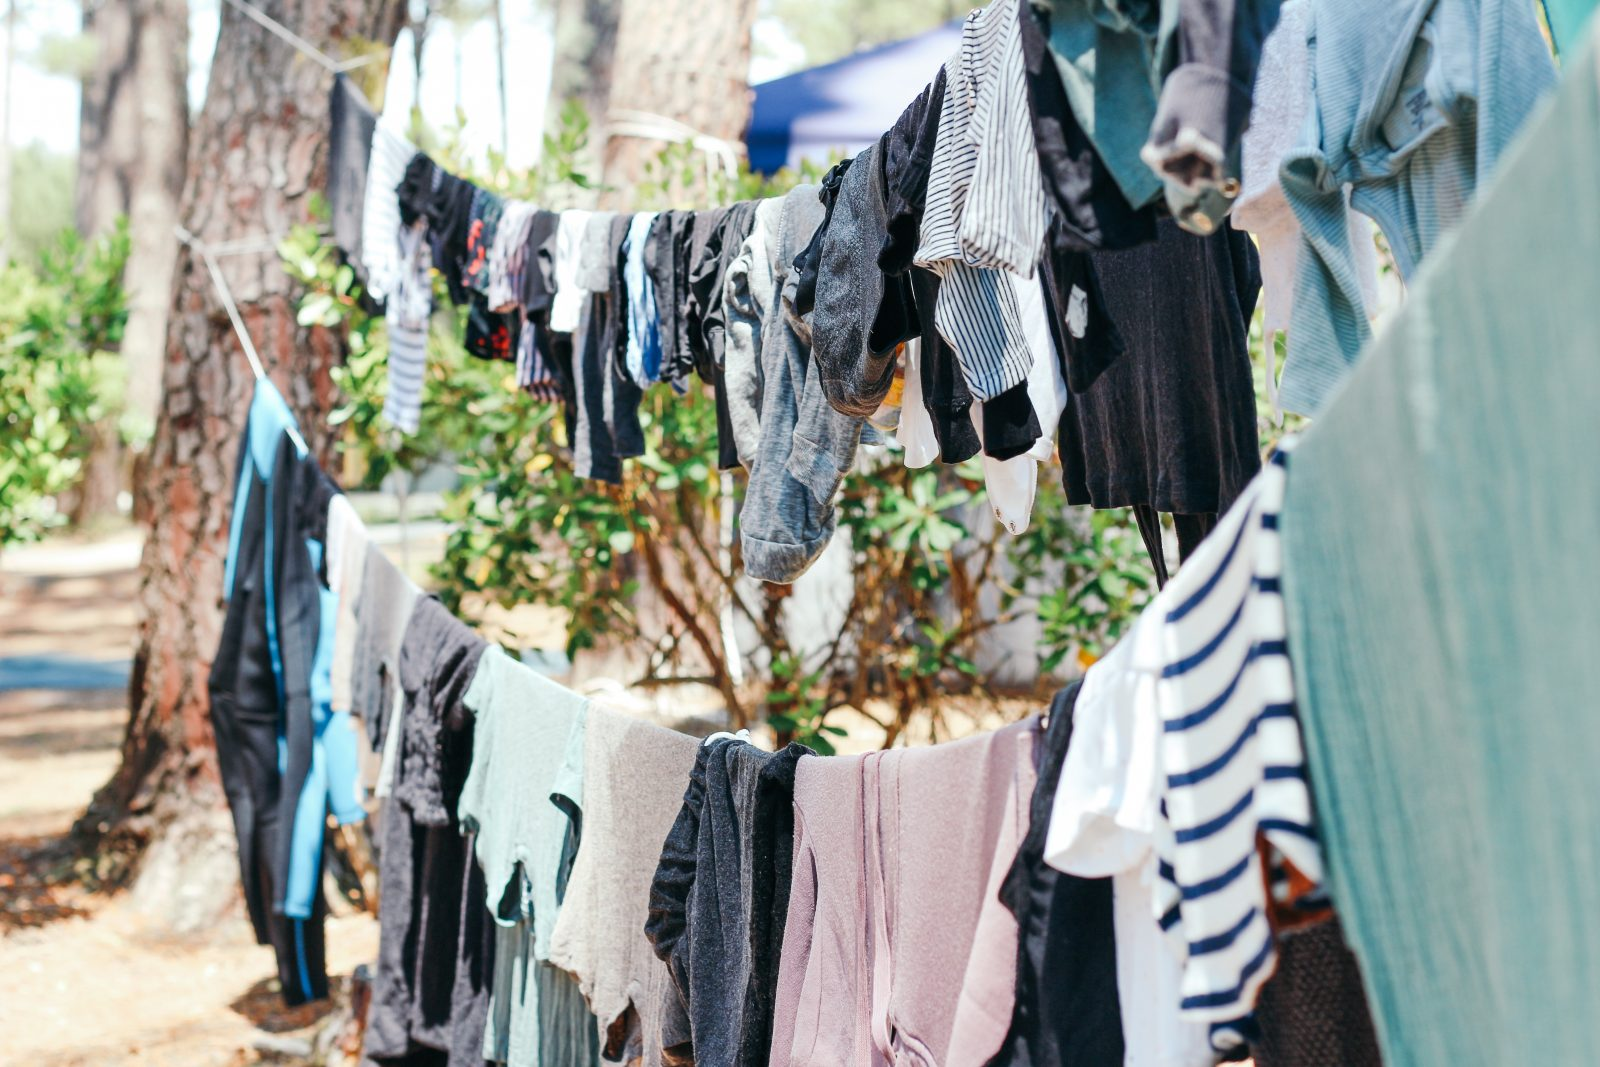 clothes hanging on a washing ine